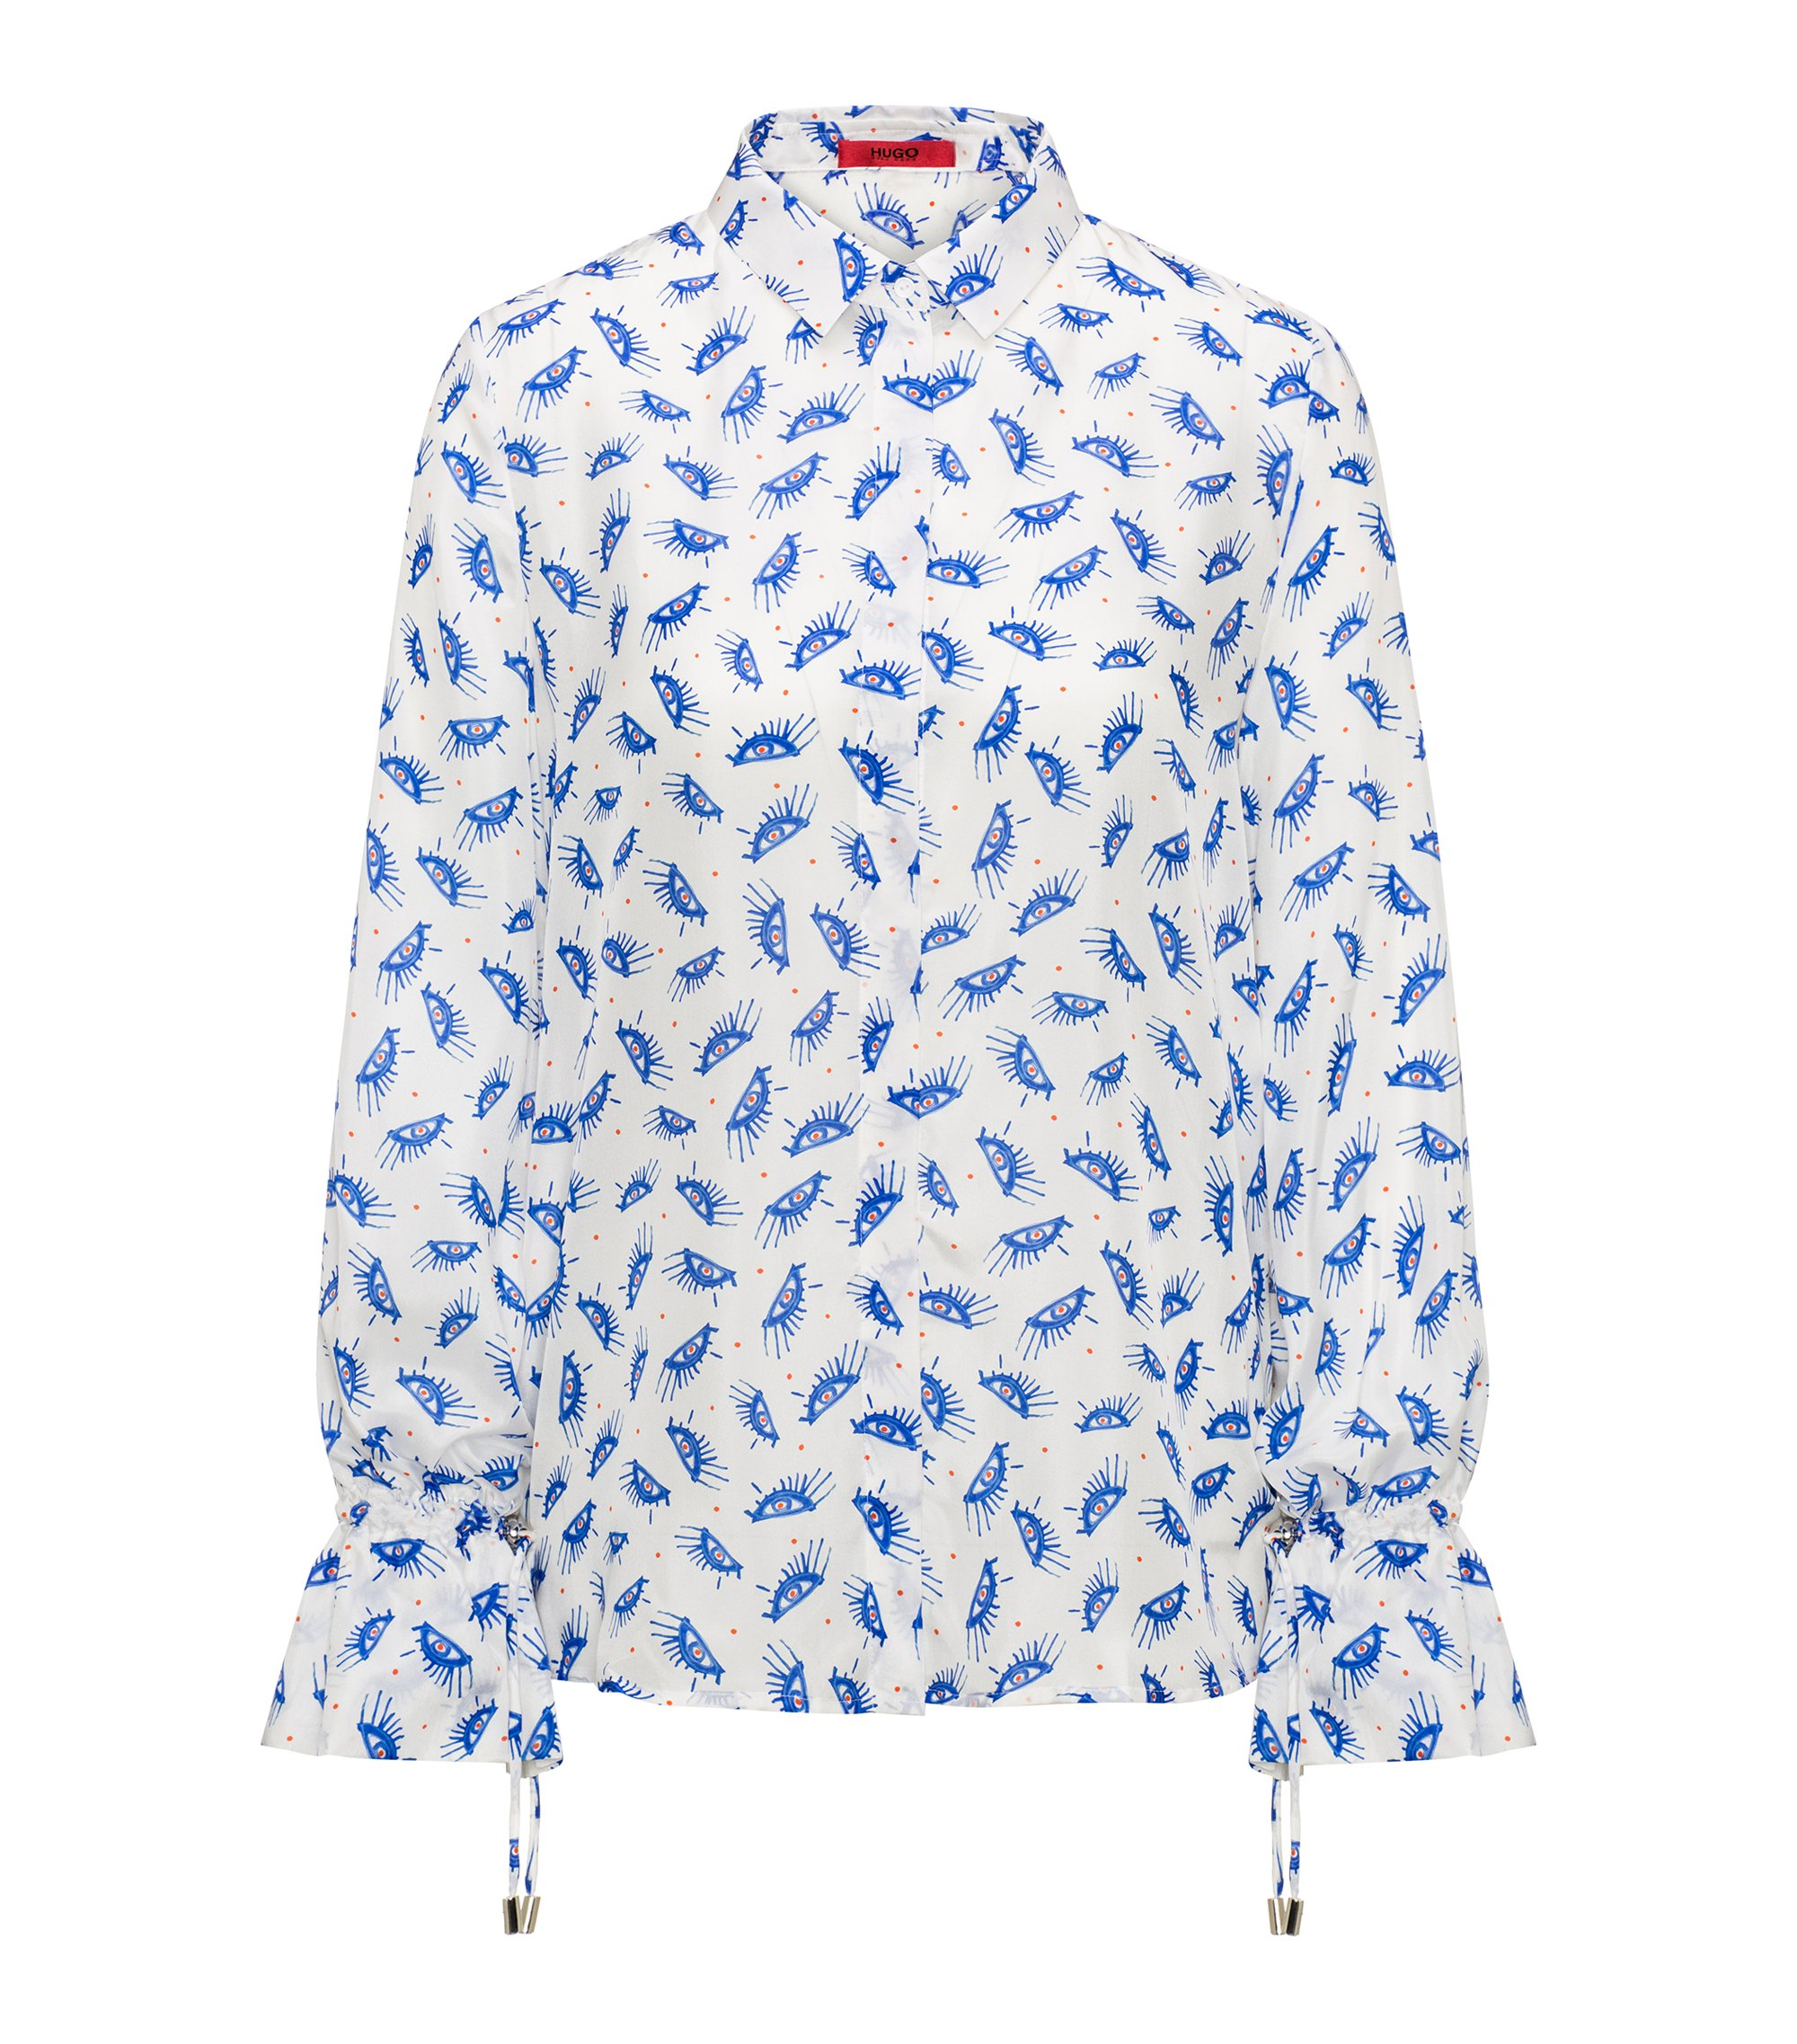 Printed silk blouse with gathered cuffs, Patterned